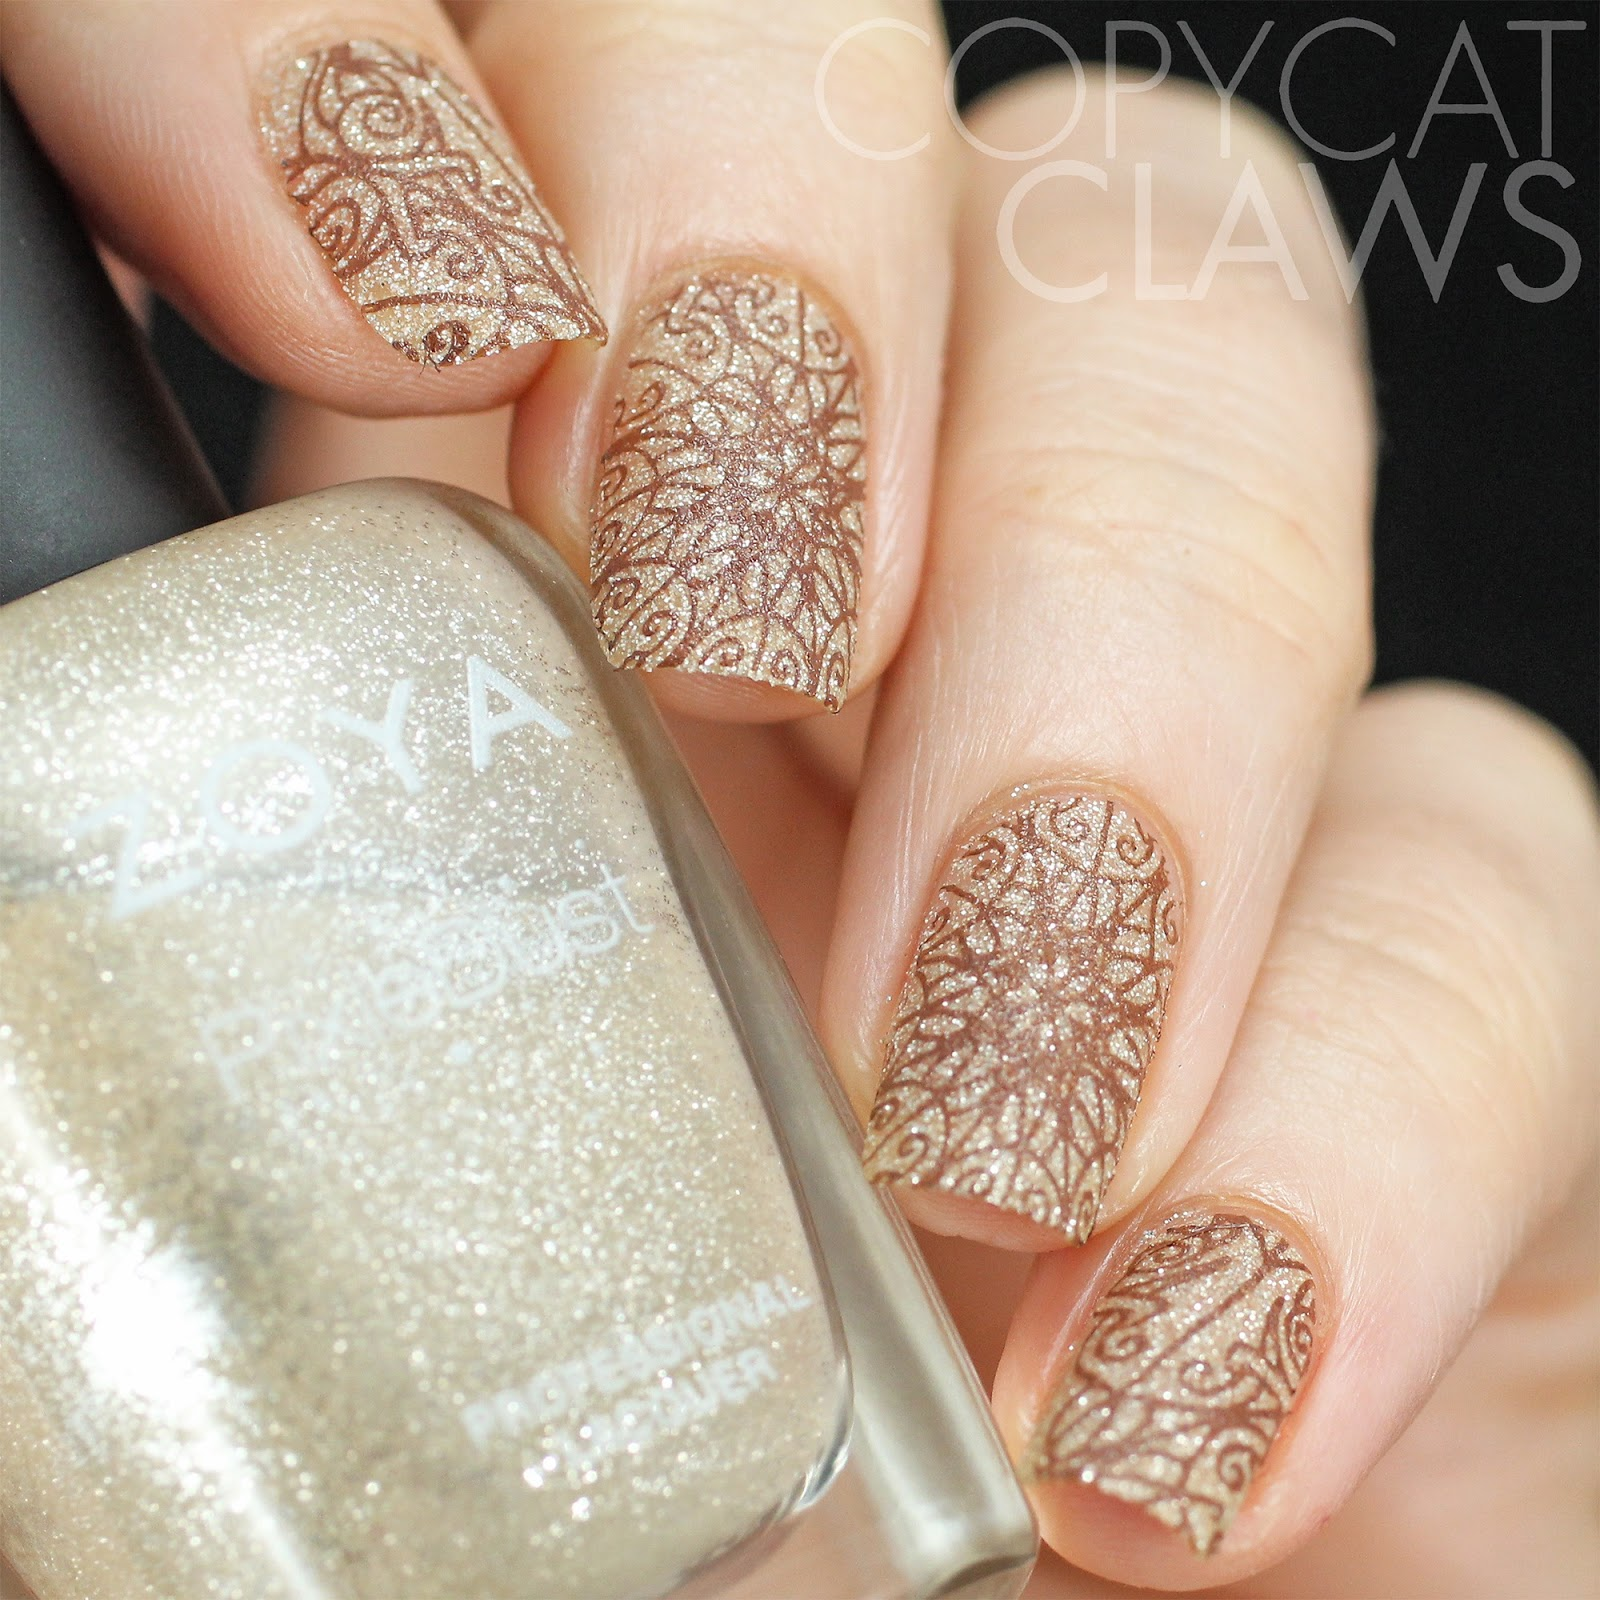 Copycat Claws: UberChic Beauty Collection 8 and Mini Uber Mats